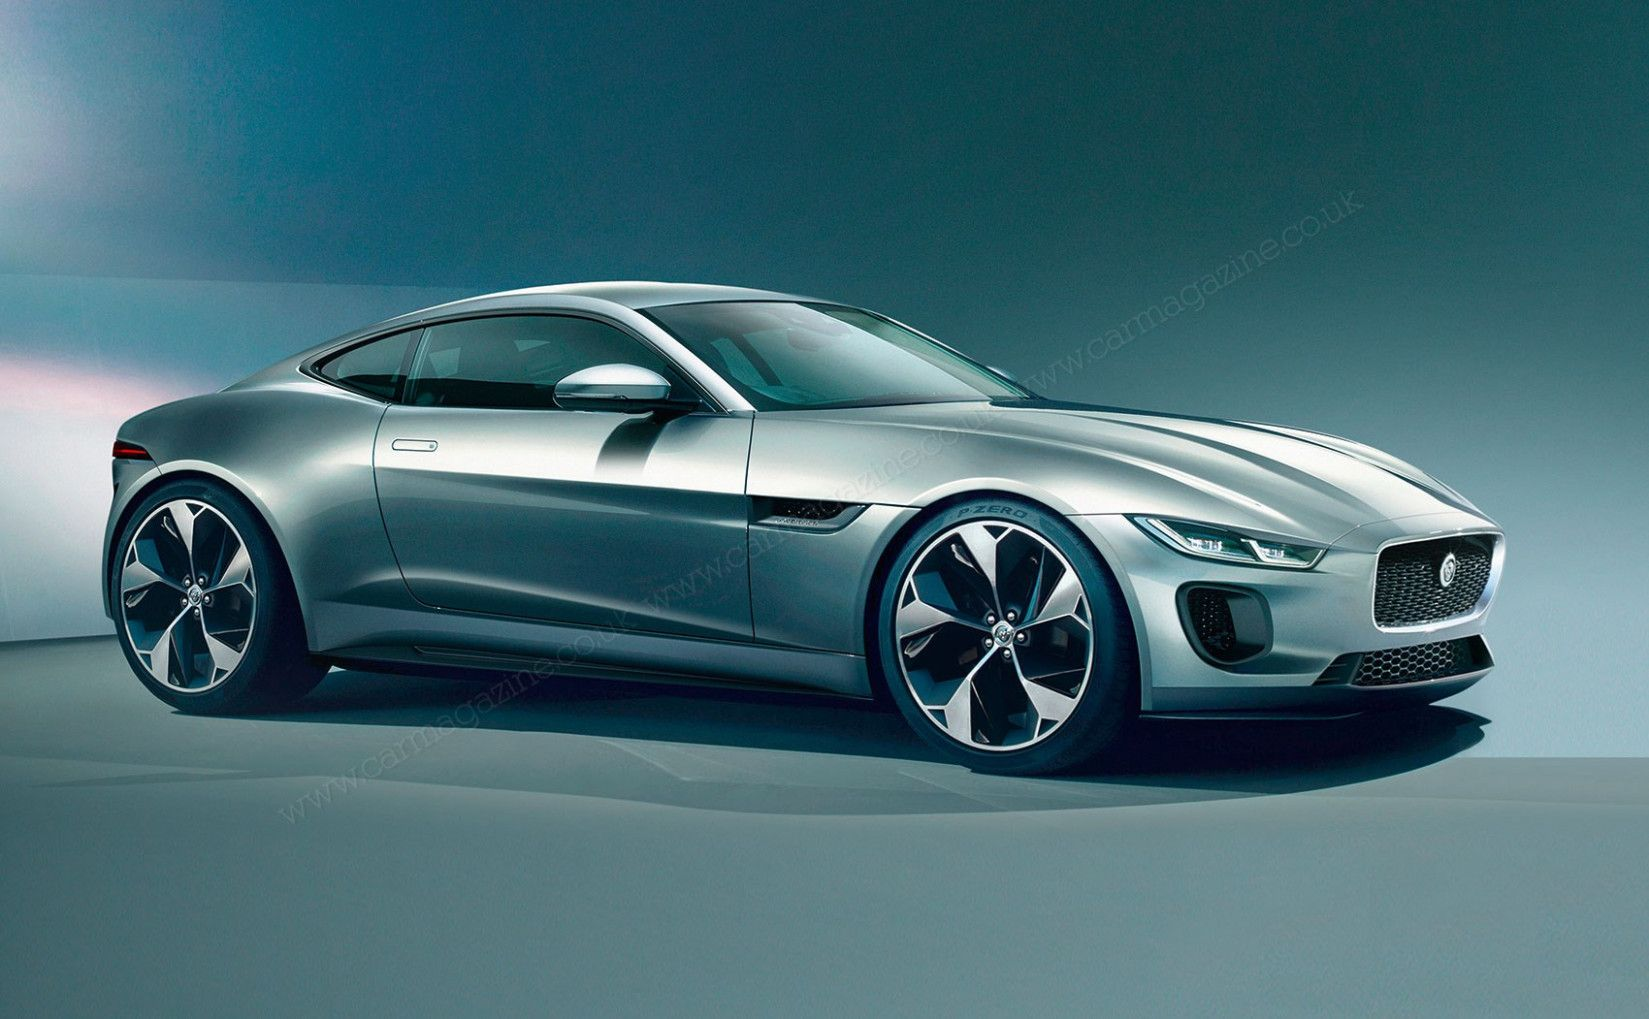 2020 Jaguar F Type Price Redesign Jaguar F Type Jaguar Models Jaguar Coupe